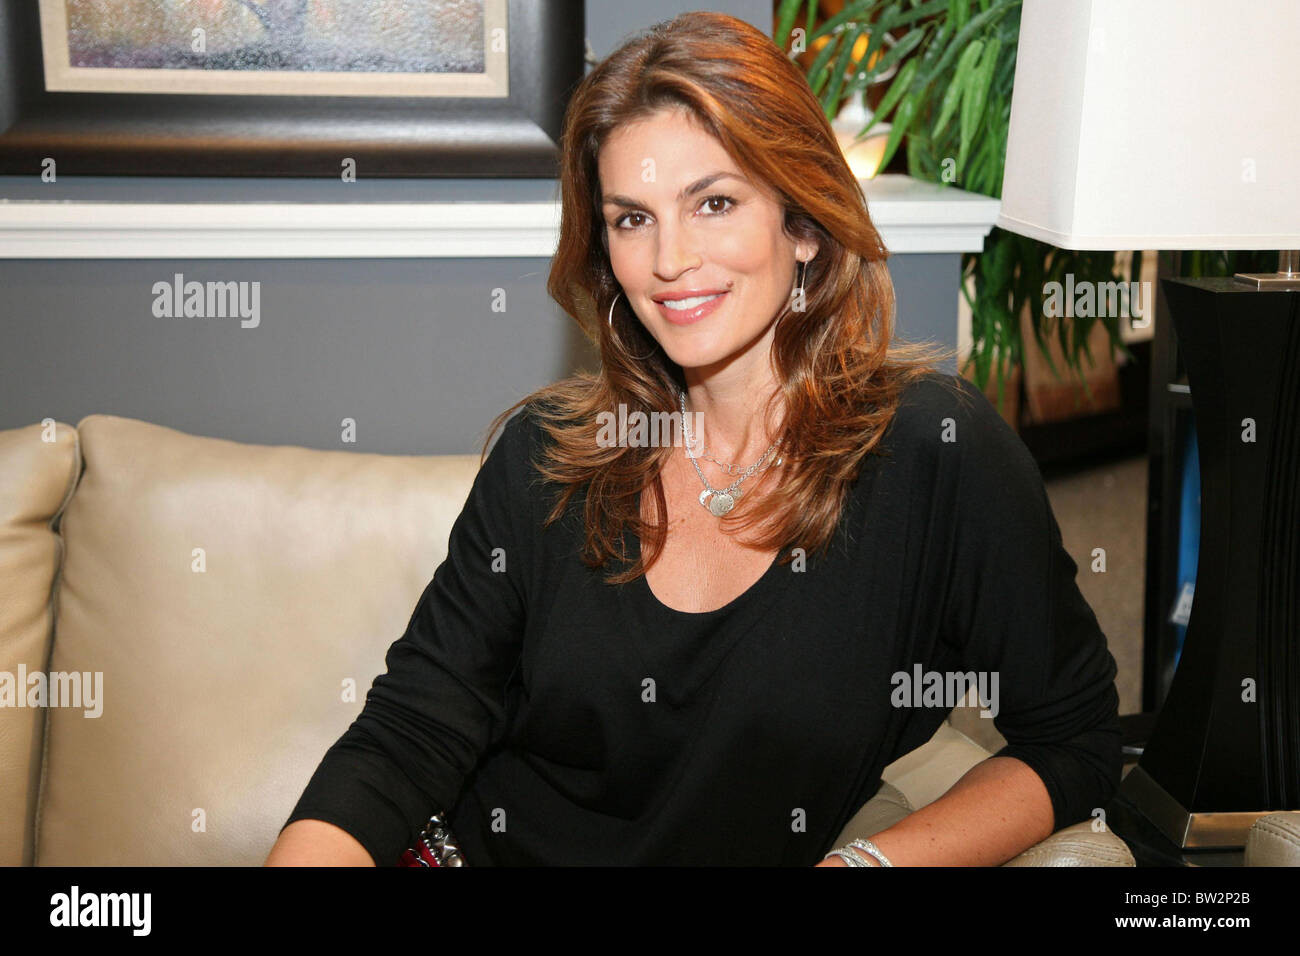 Cindy Crawford Home Launch Of Cindy Crawford Home Furnishing Line Stock Photo Royalty